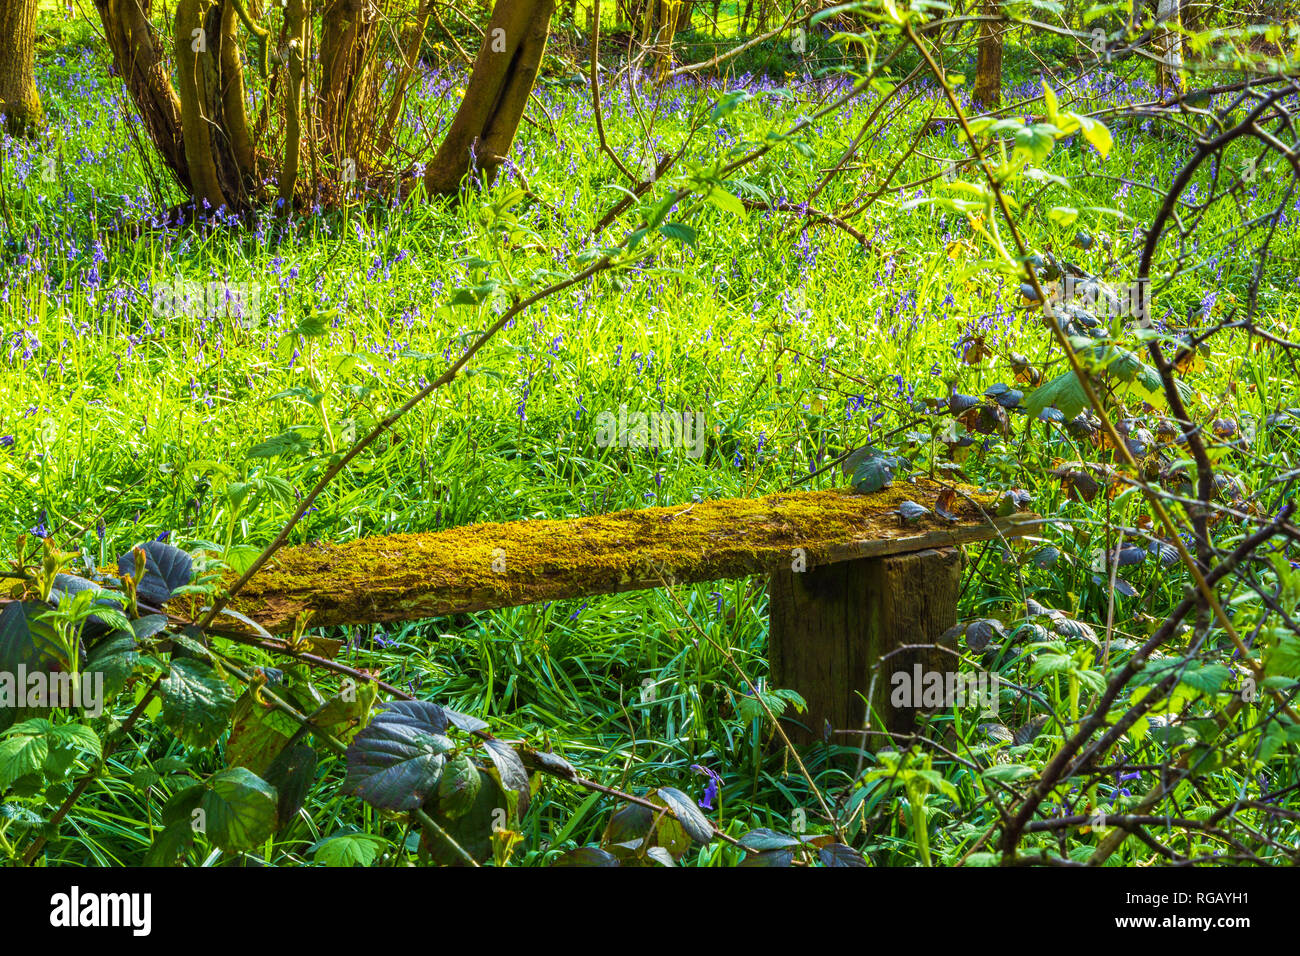 Bluebells on the forest floor in a country park in Dudley, UK. - Stock Image